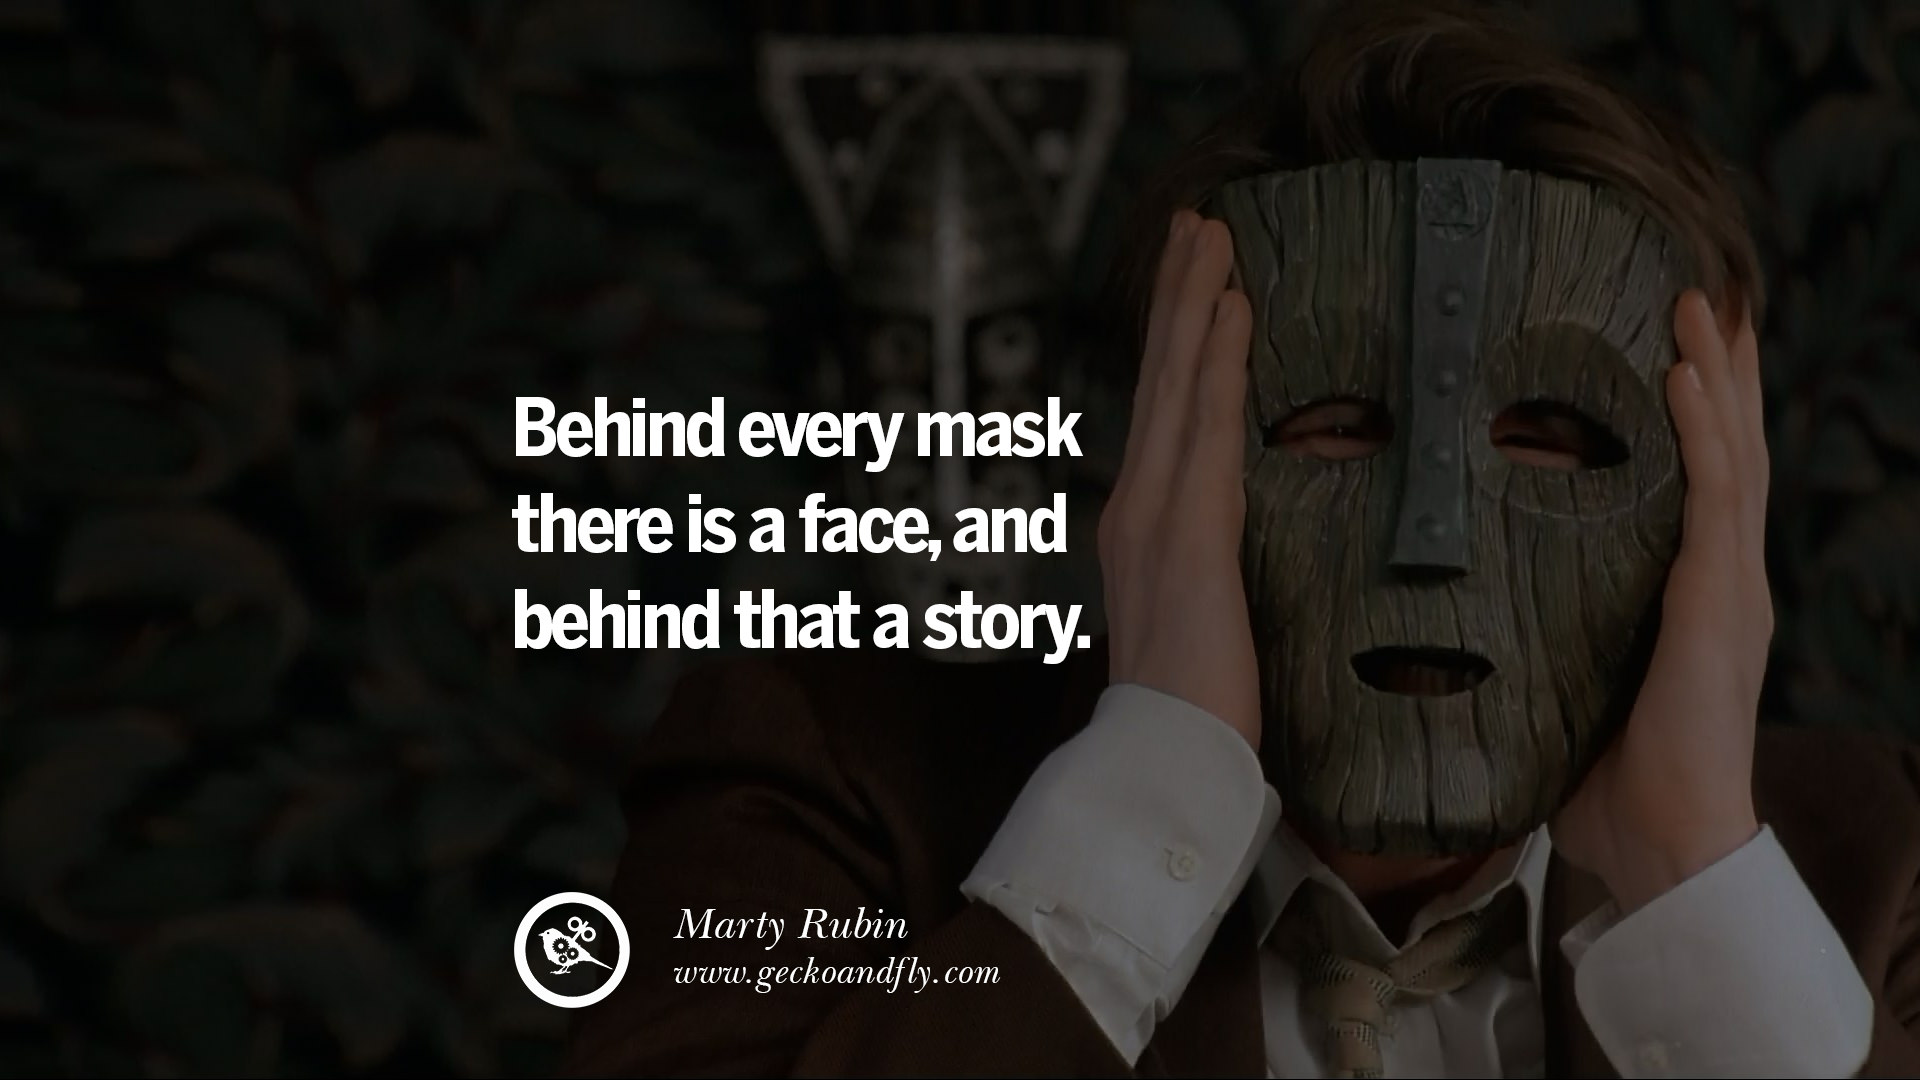 24 Quotes On Wearing A Mask Lying And Hiding Oneself